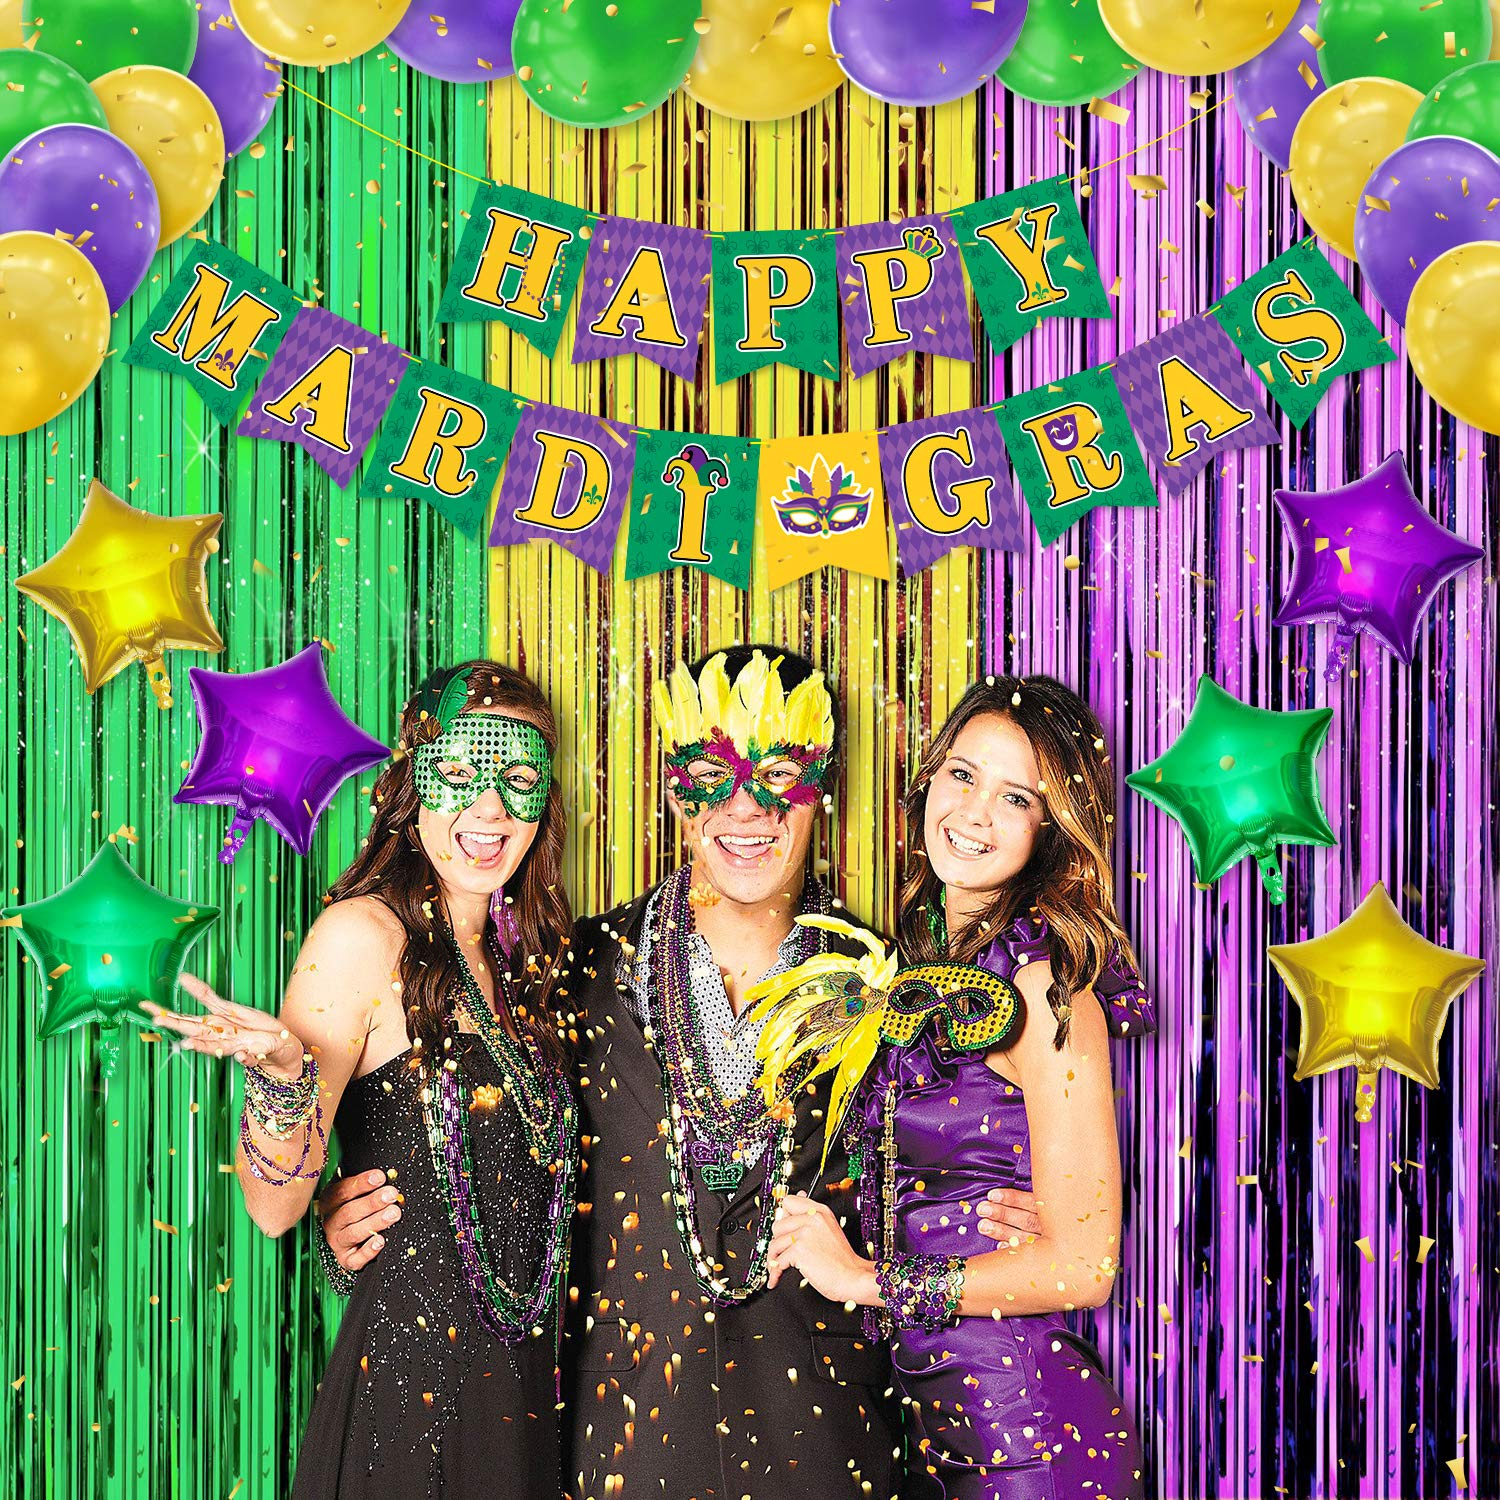 Mardi Gras Party Decorations Set Happy Mardi Gras Banner Green Gold Purple Foil Fringe Curtains Backdrop Star Foil Party Balloons for Mardi Gras Theme Masquerade Party Birthday Baby Shower Supplies New Orleans Carnival Favors